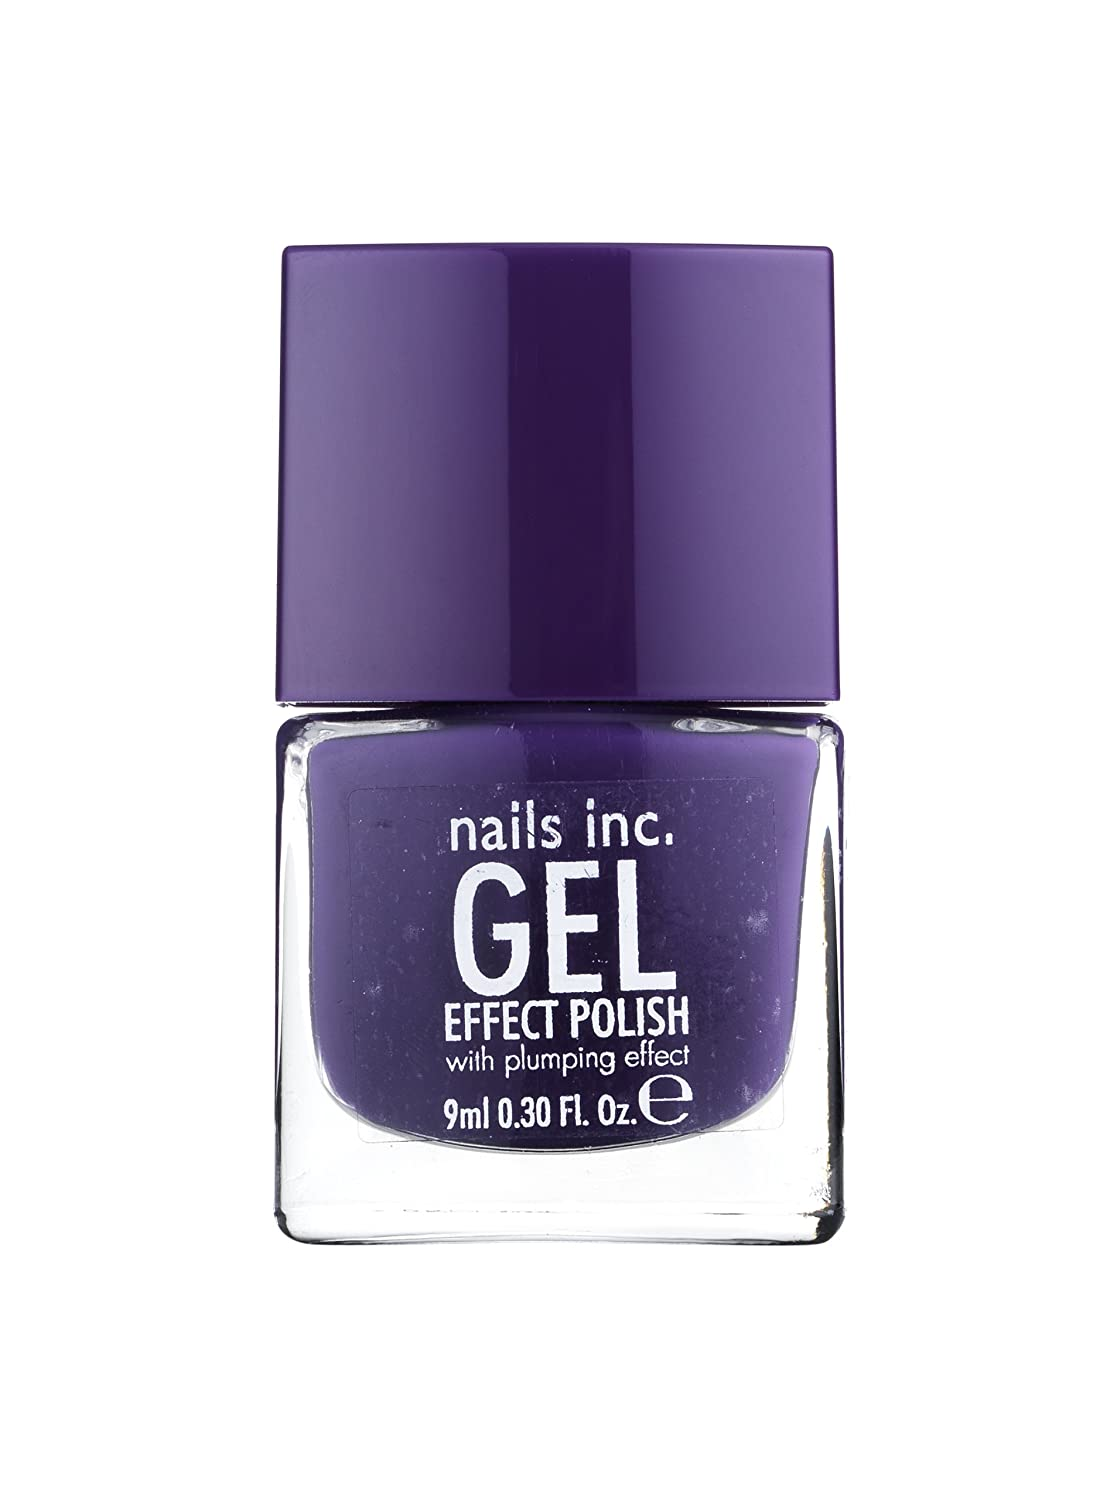 Nails Inc Gel Effect Polish, Bond Street 8ml: Amazon.co.uk: Beauty